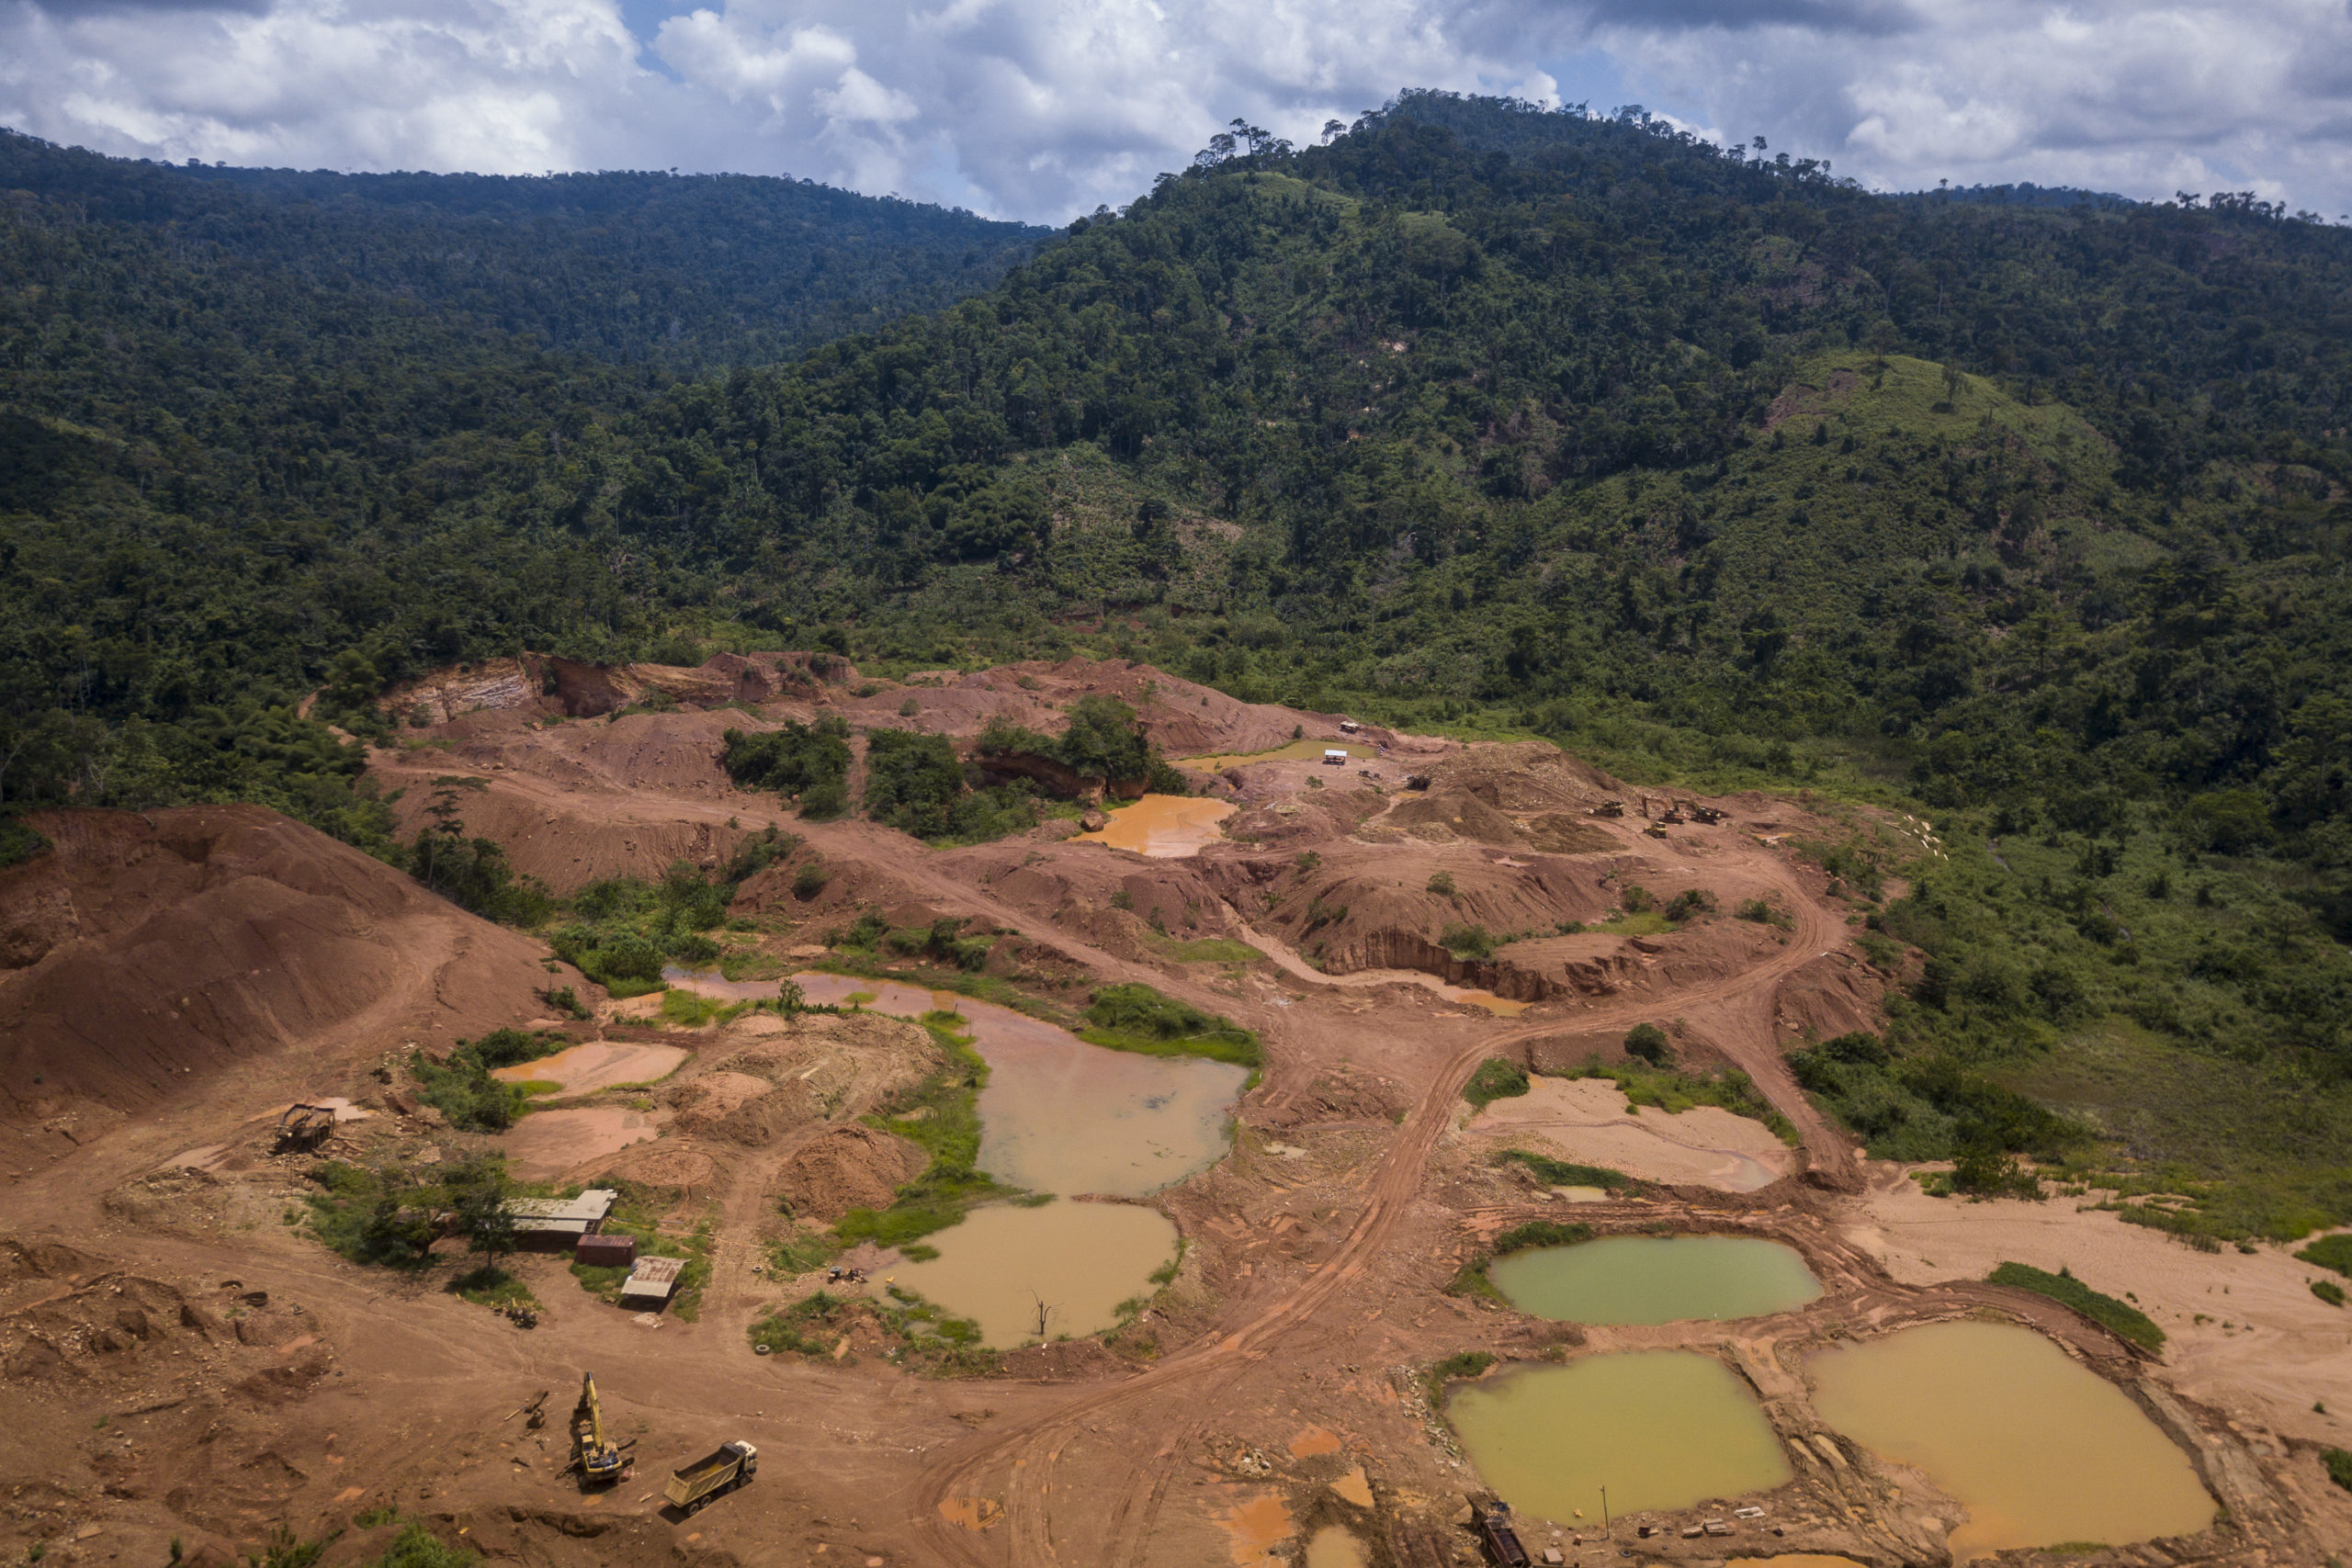 Satellite imagery helps Ghana fight illegal mining